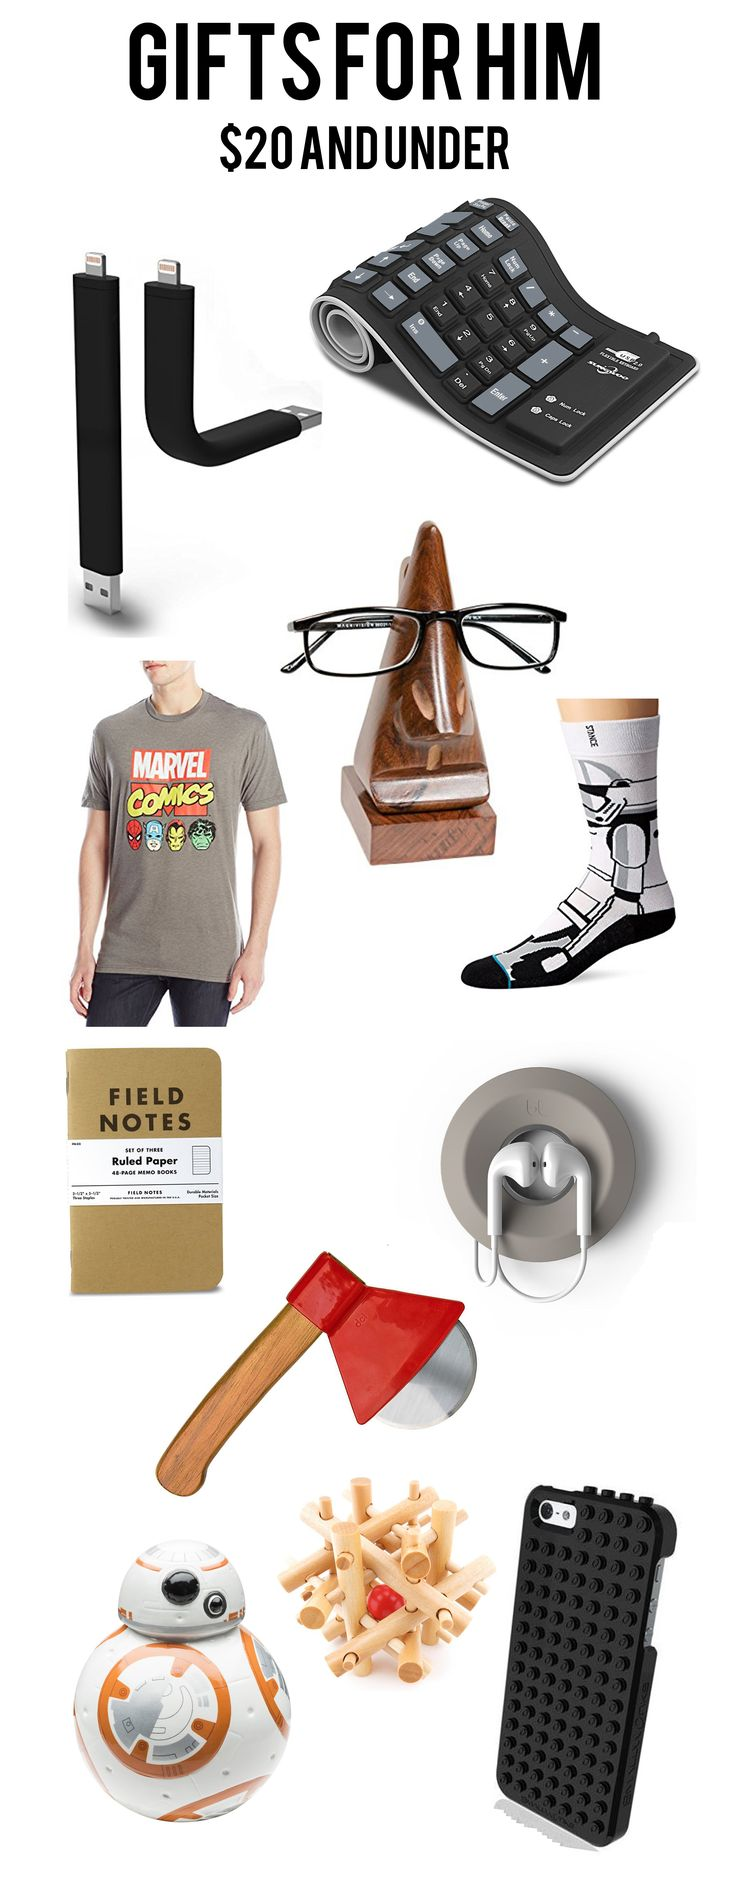 Gift Guide for Him - $20 and Under